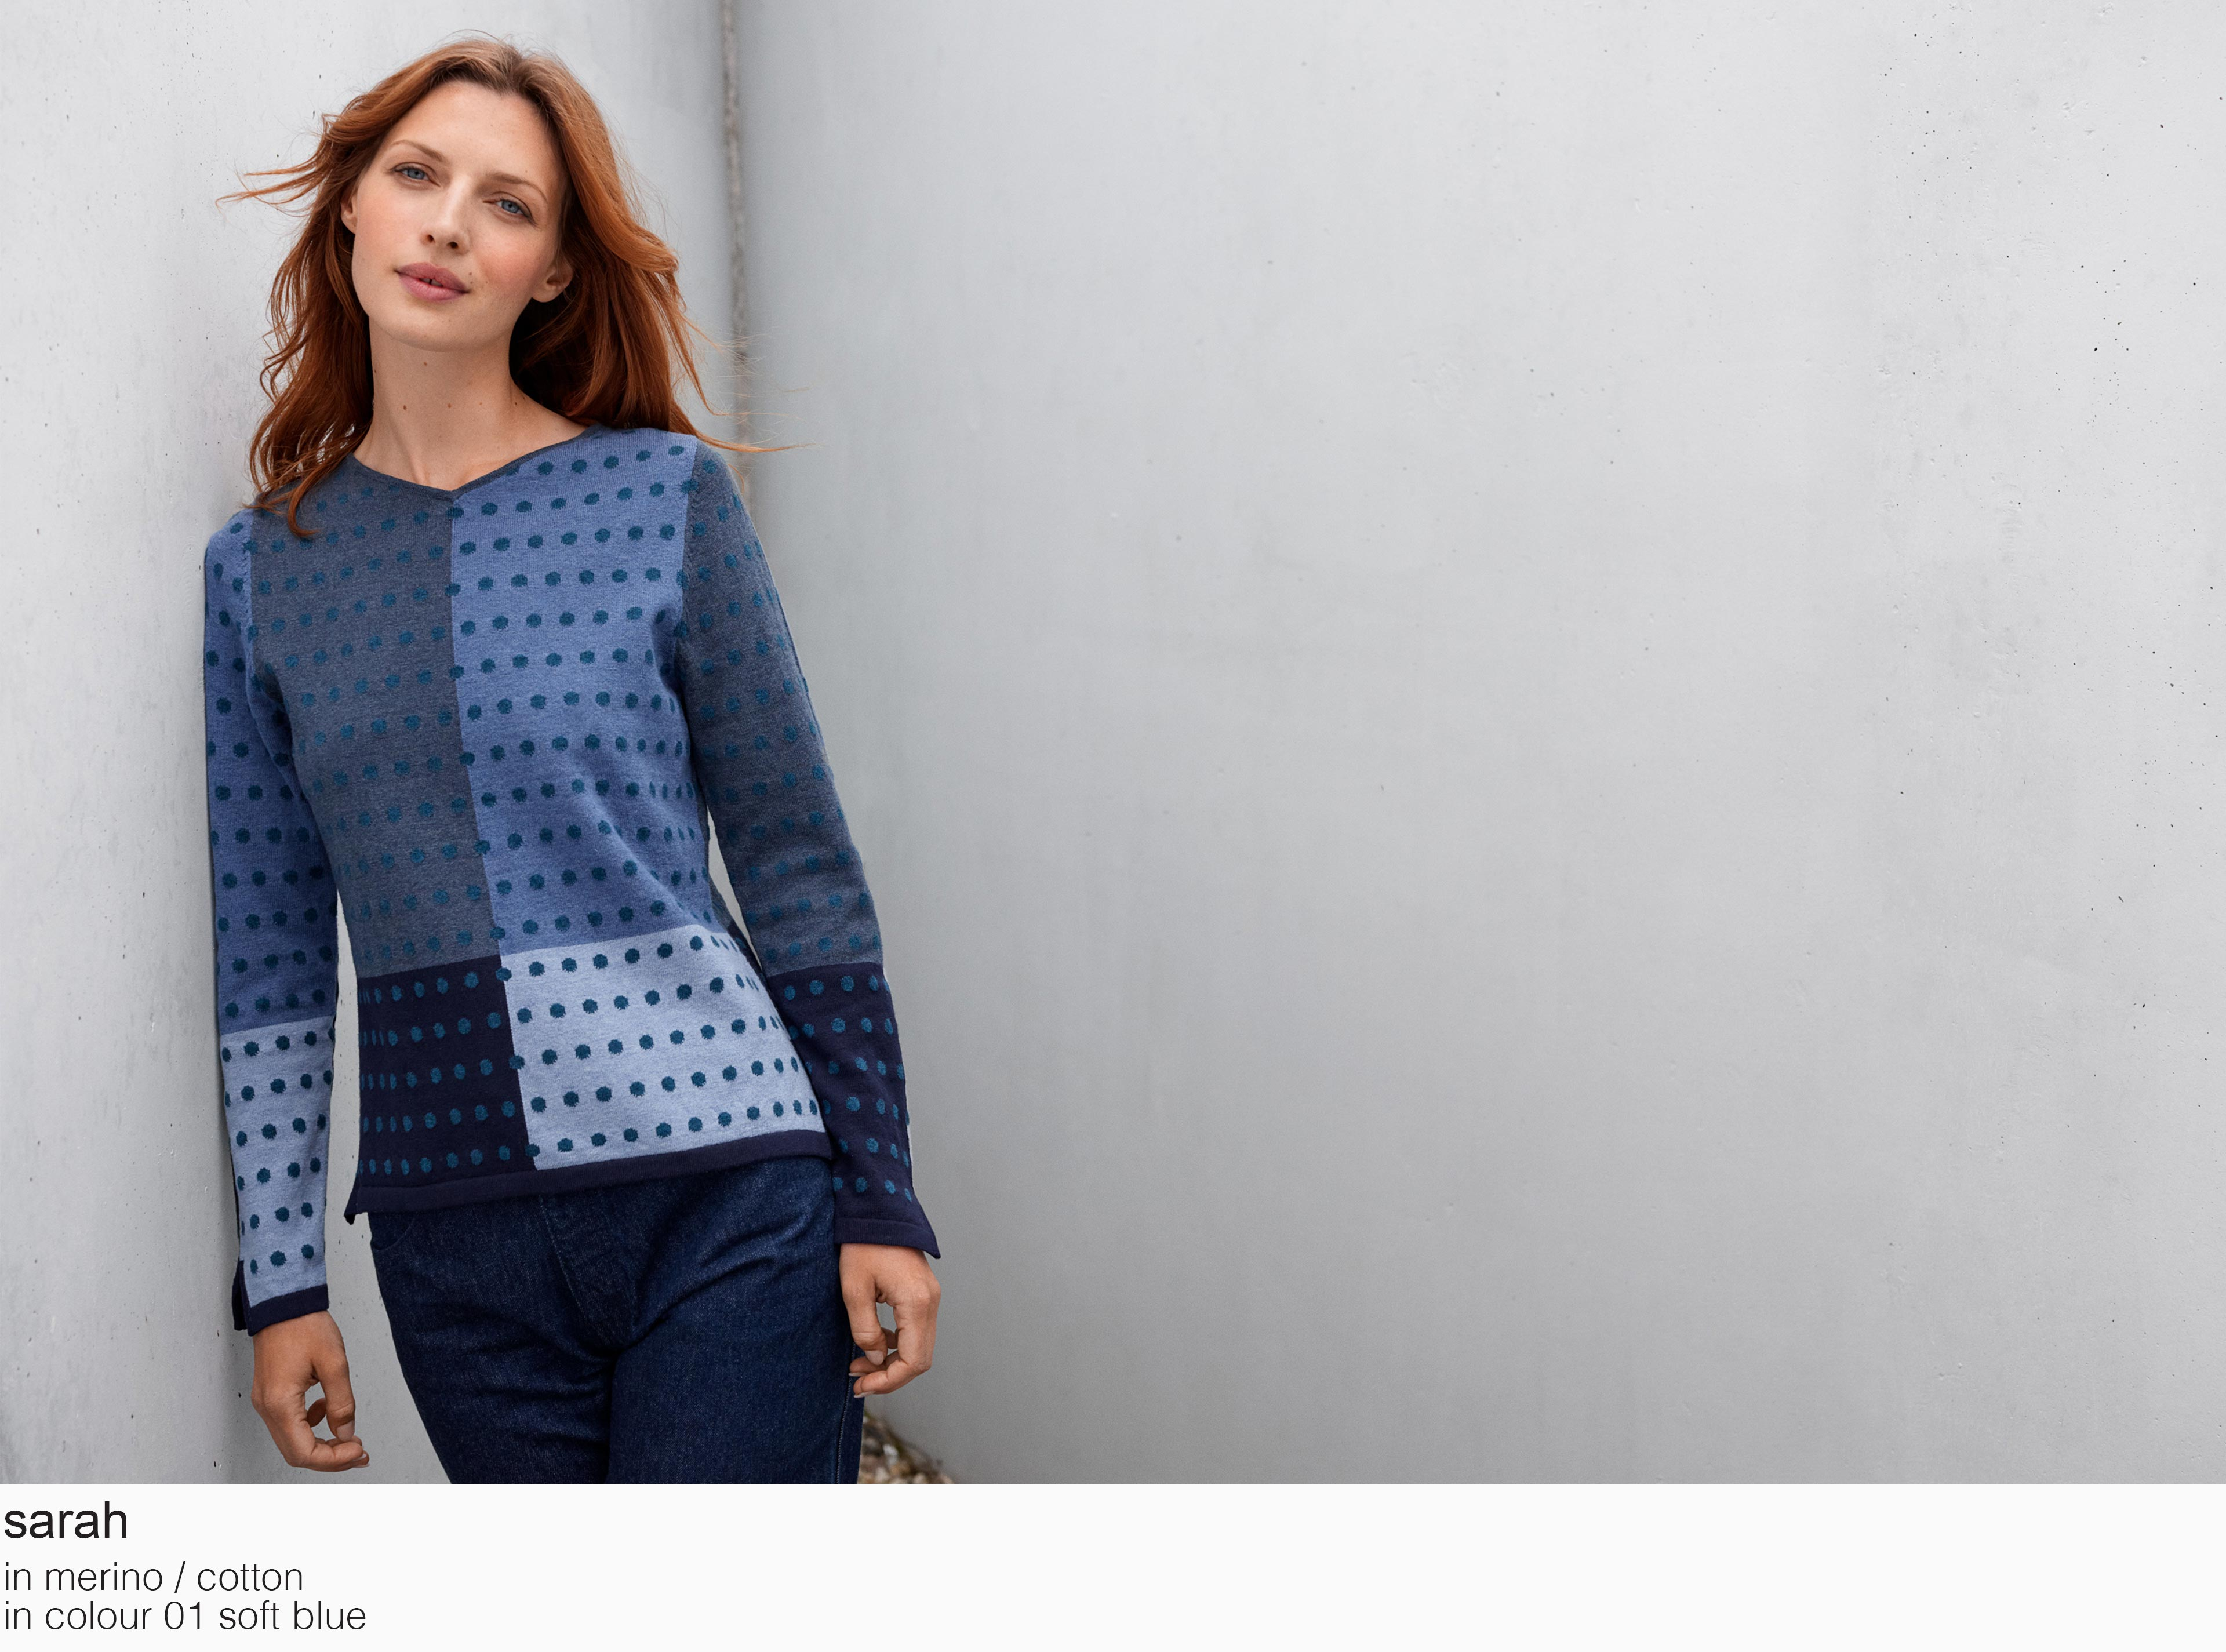 mansted sarah merino cotton 01 soft blue aw19 aw 2019 Knitwear quality knit multicoloured colour colourful cotton yak lambswool soft versatile feminine beautiful details fashion favourite autumn winter bright colours pullover jumper t-shirt cardigan jacket strik kvalitetsstrik farverig bluser trøjer feminin strik til kvinder